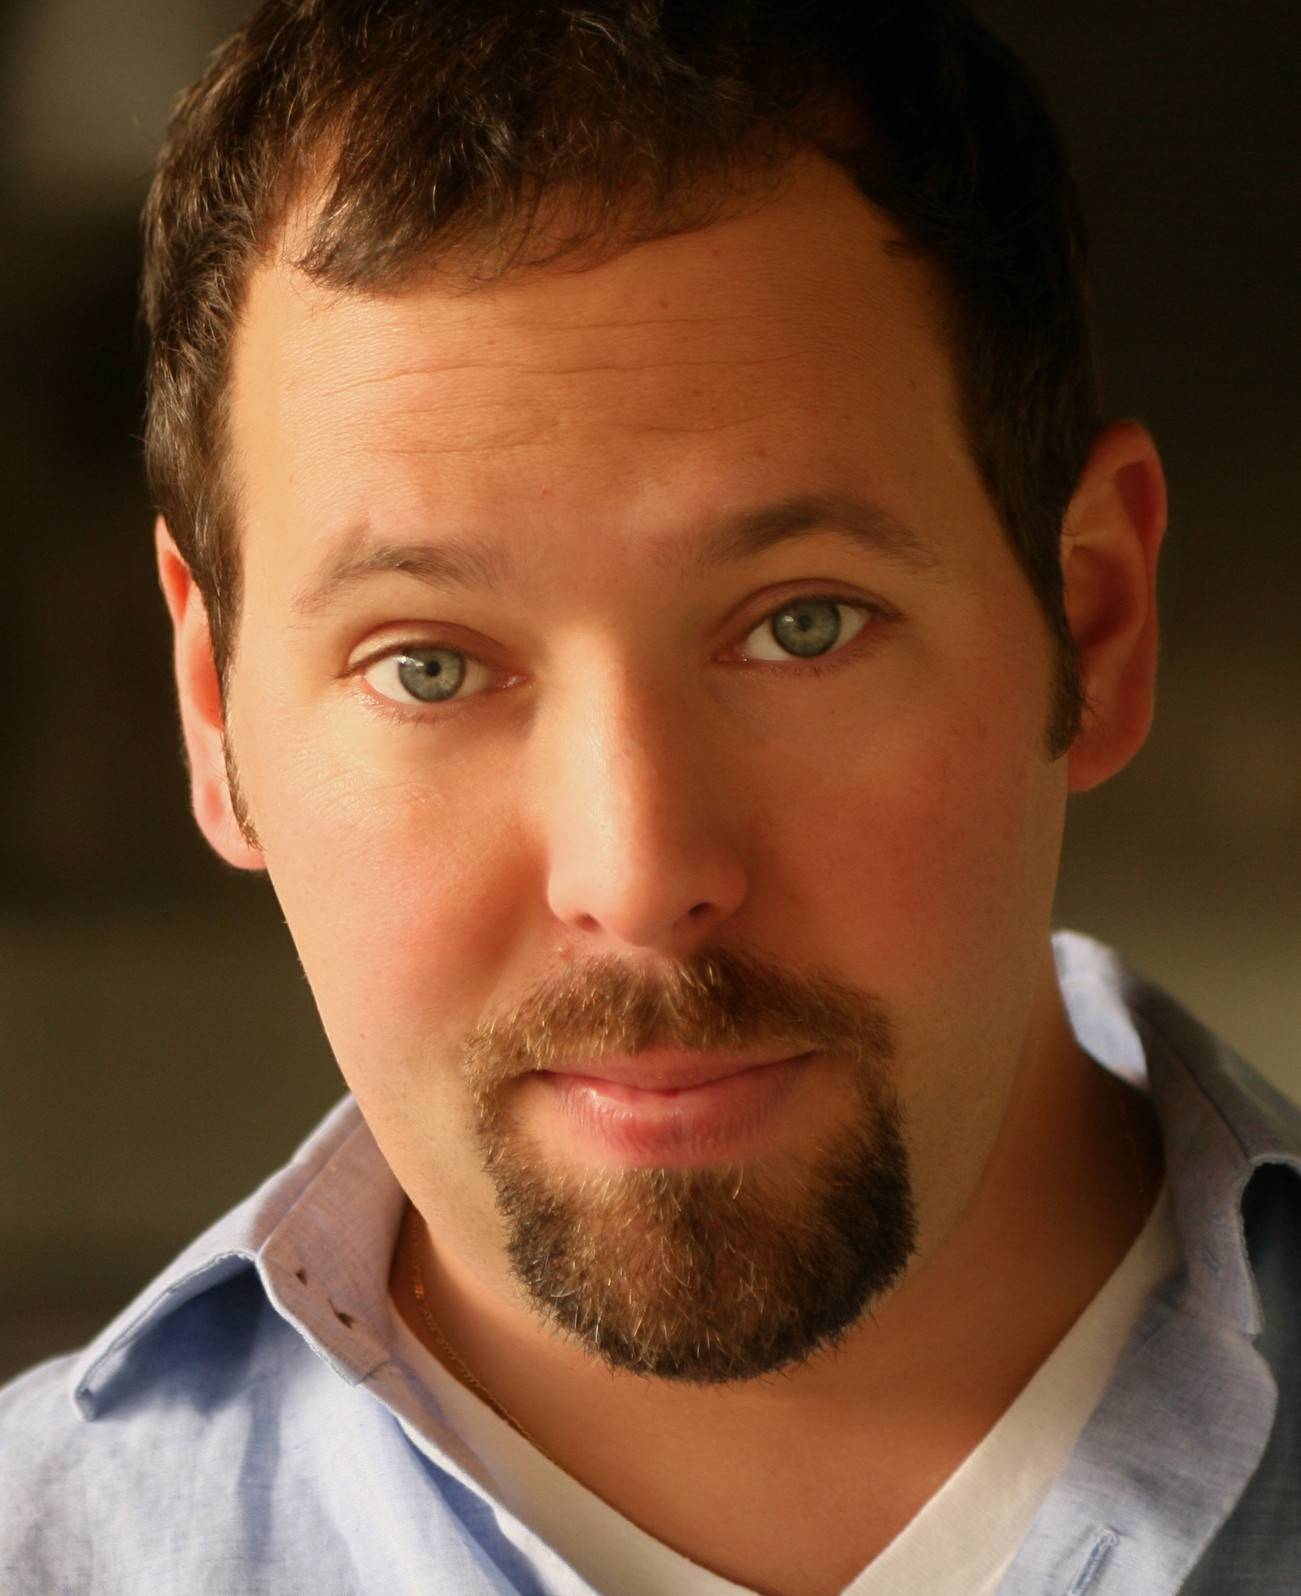 Comedian Bert Kreischer performs at the Improv Comedy Showcase in Schaumburg on Friday and Saturday, March 14 and 15.